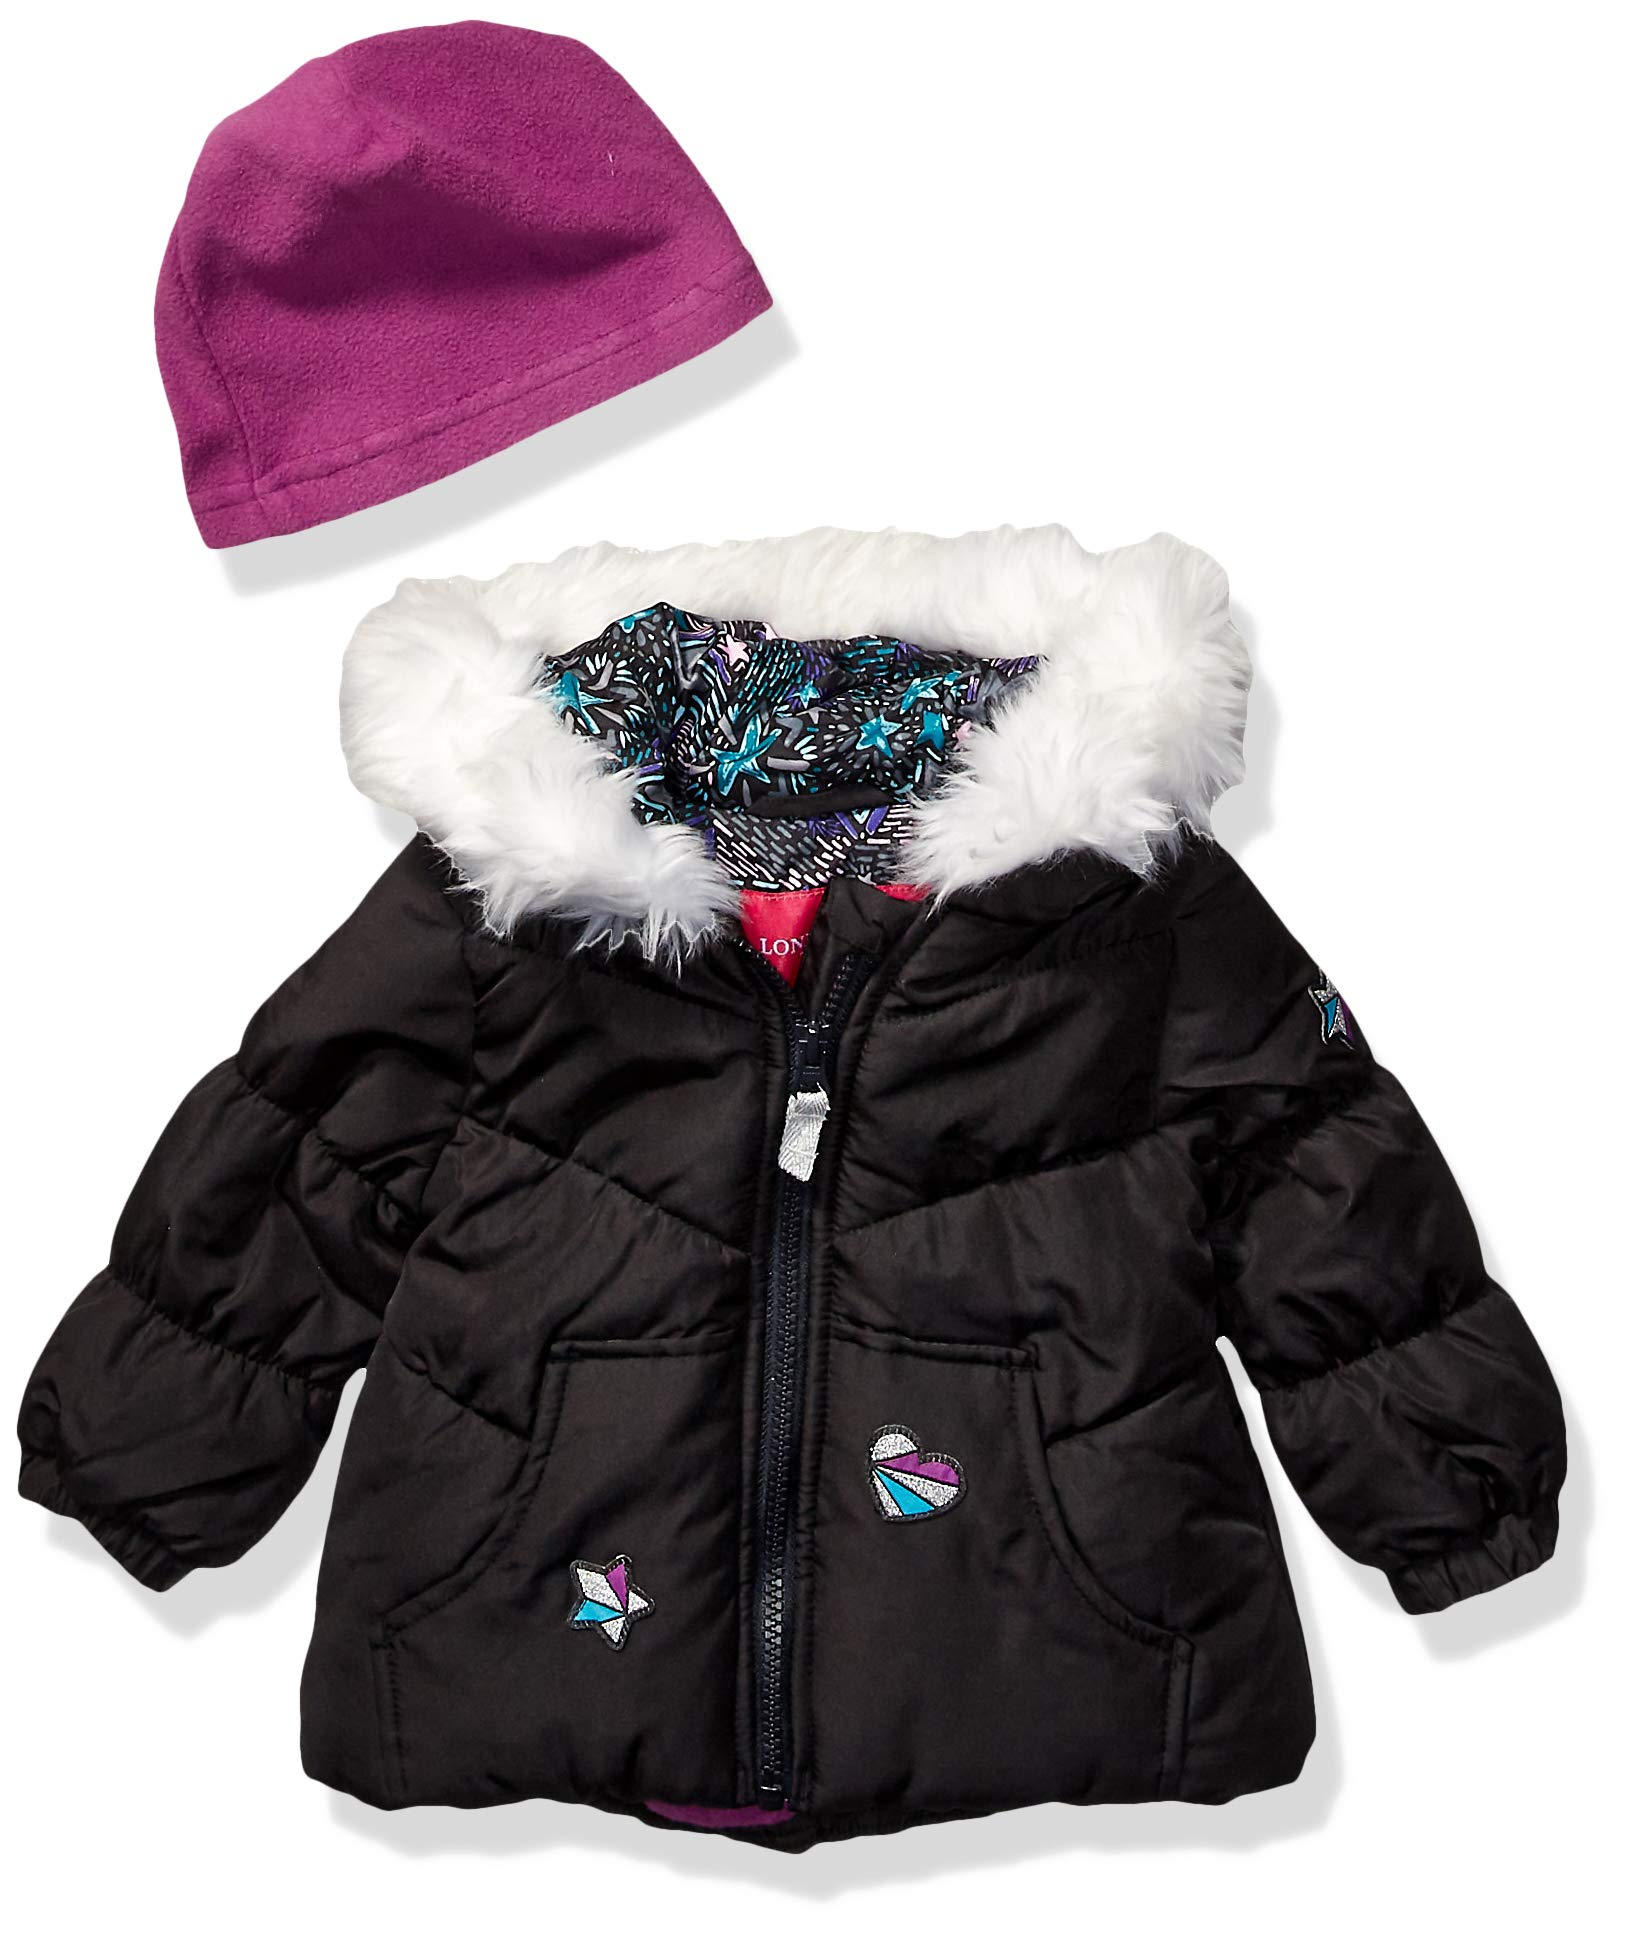 London Fog Baby Girls Puffer Jacket with Scarf & Hat, Black Solid, 18Mo by London Fog